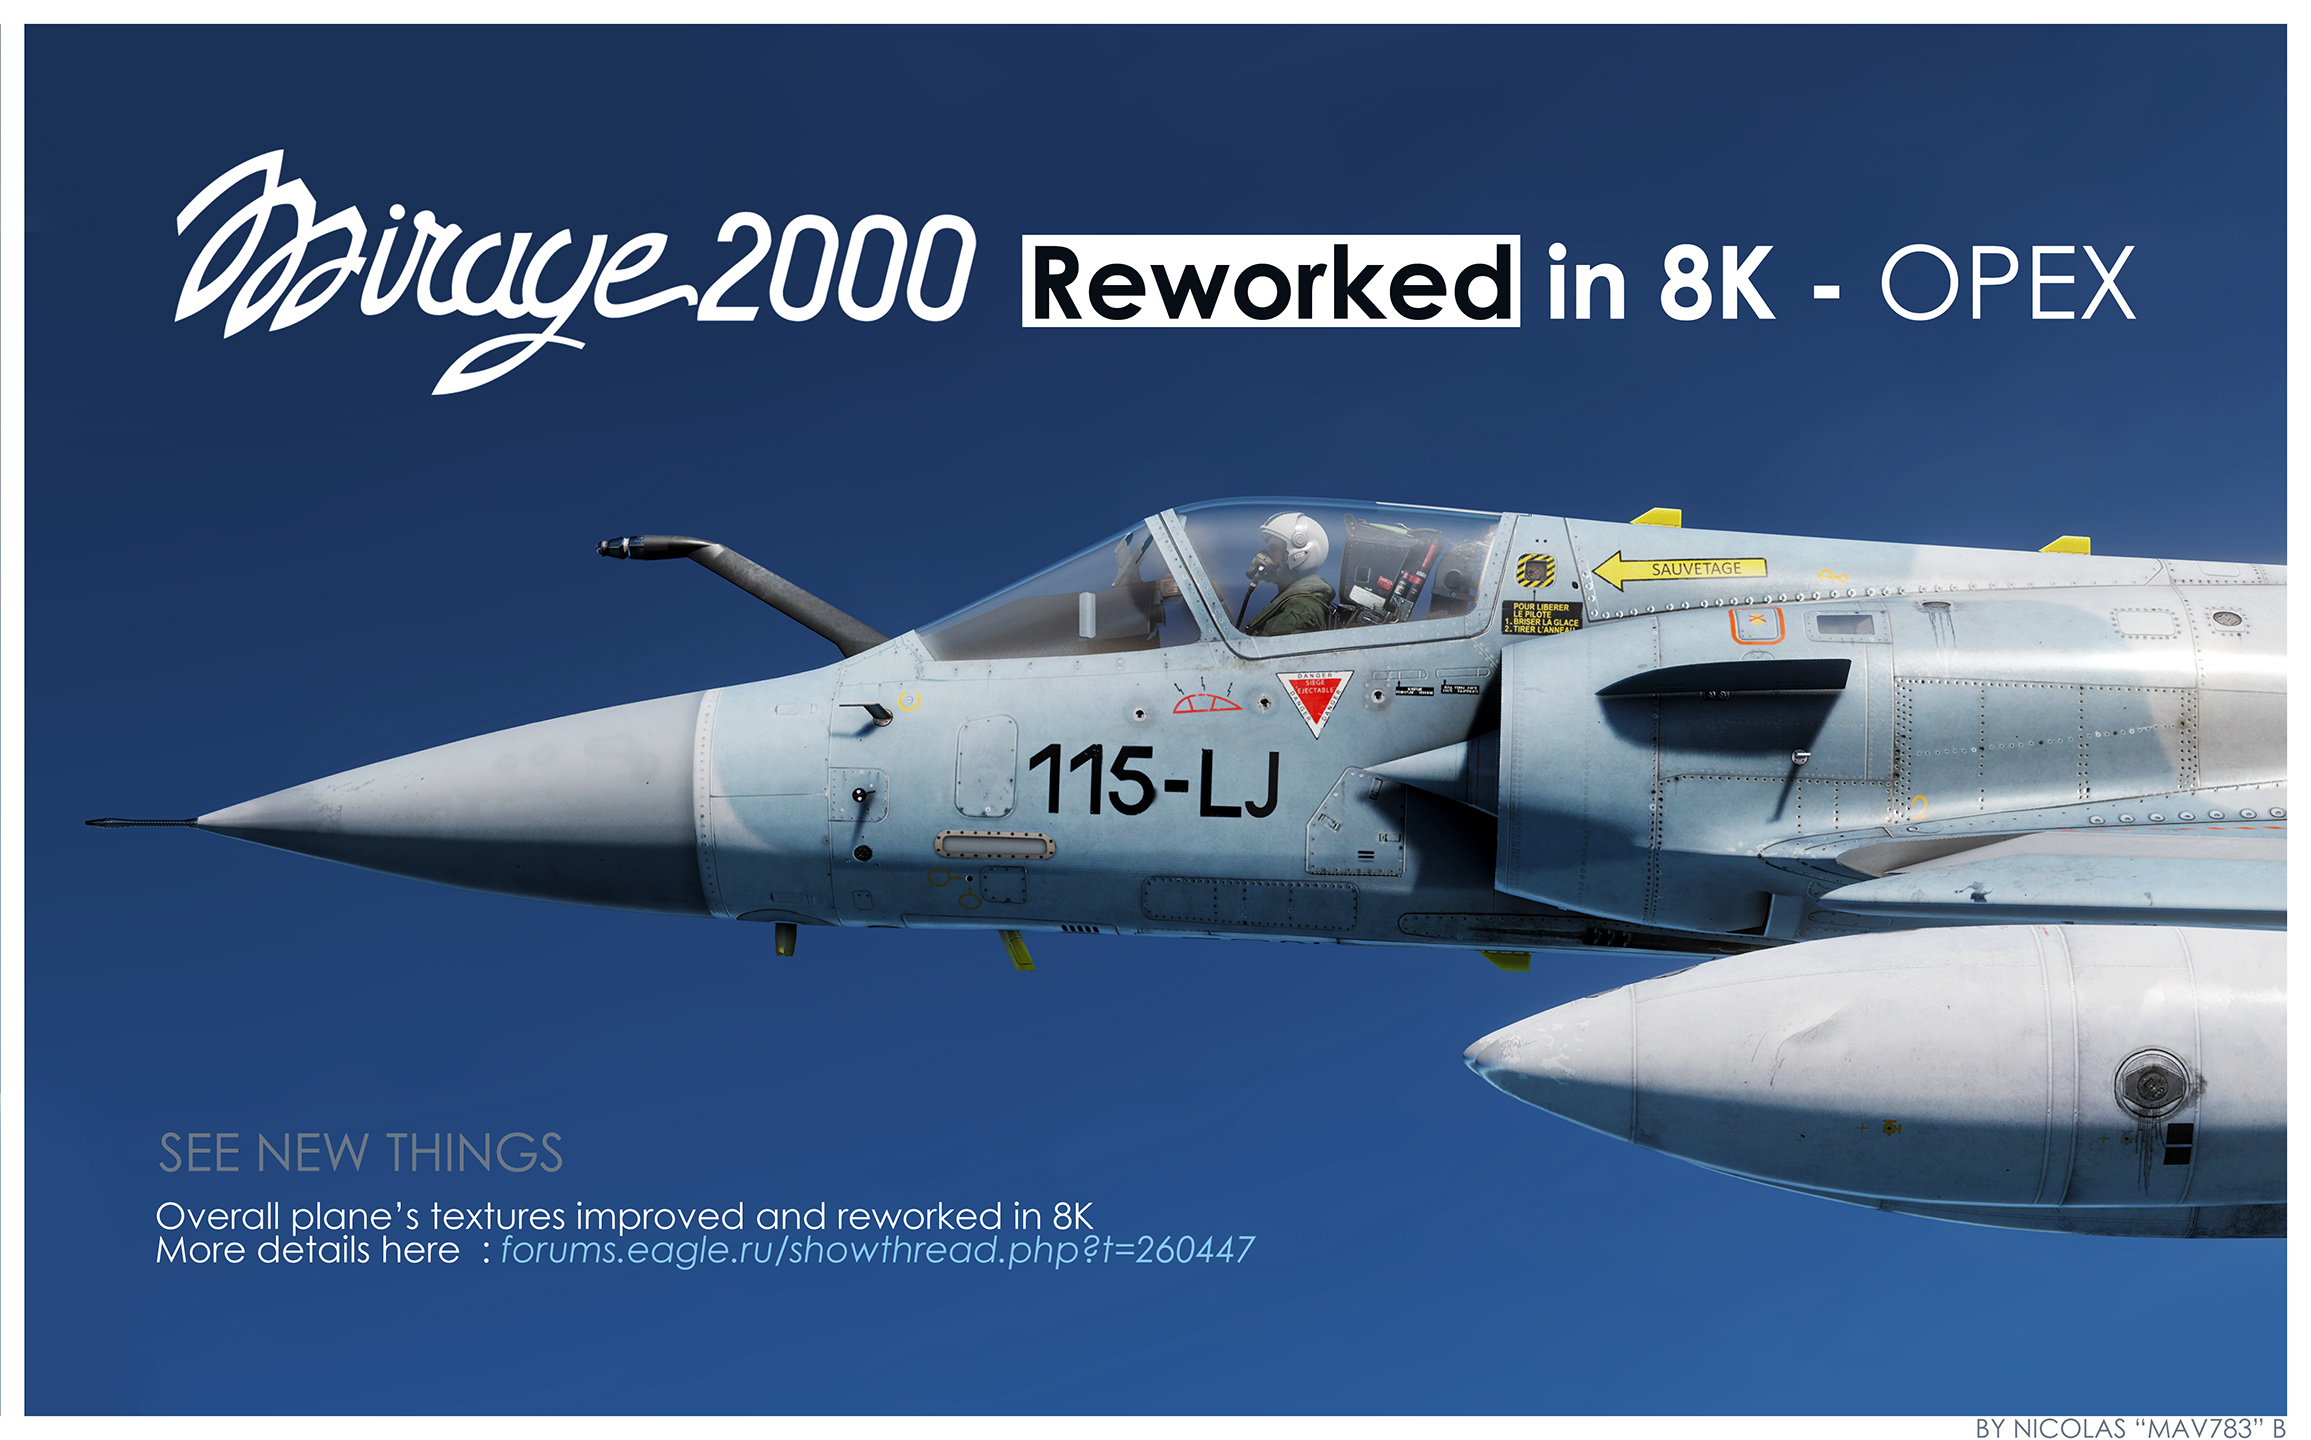 Overall improved and reworked textures in 8K ! - Mirage 2000C - (JSGME ready)